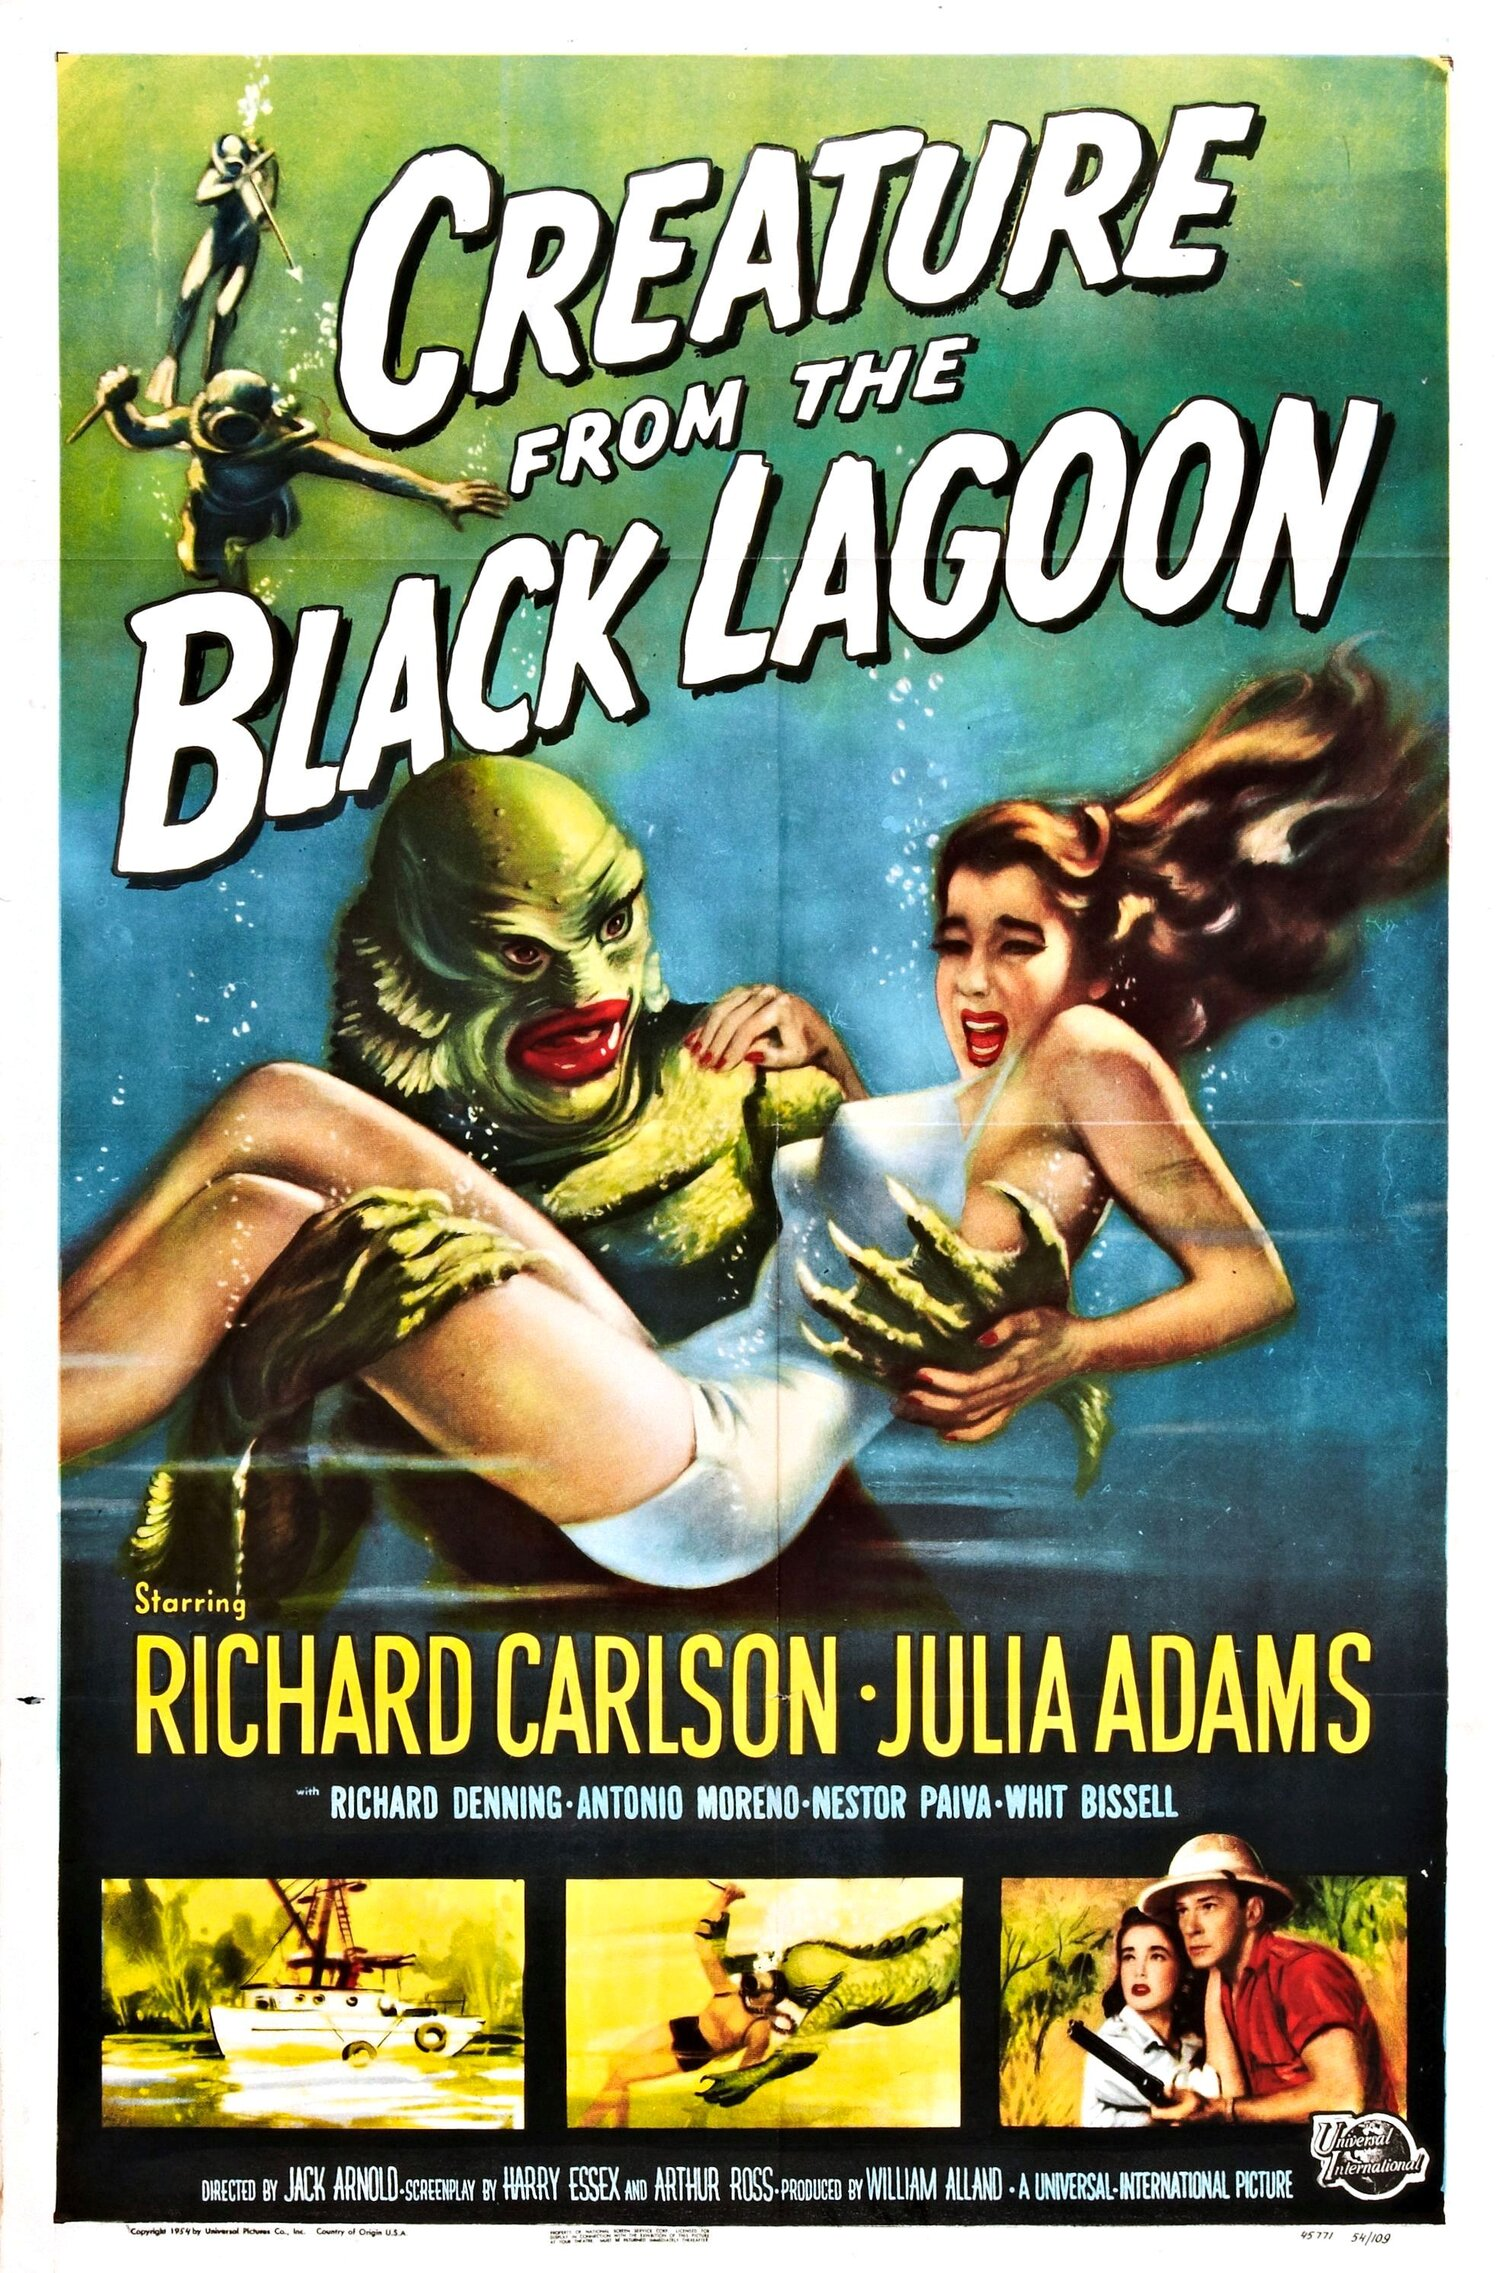 Creature_from_the_Black_Lagoon_poster.jpg